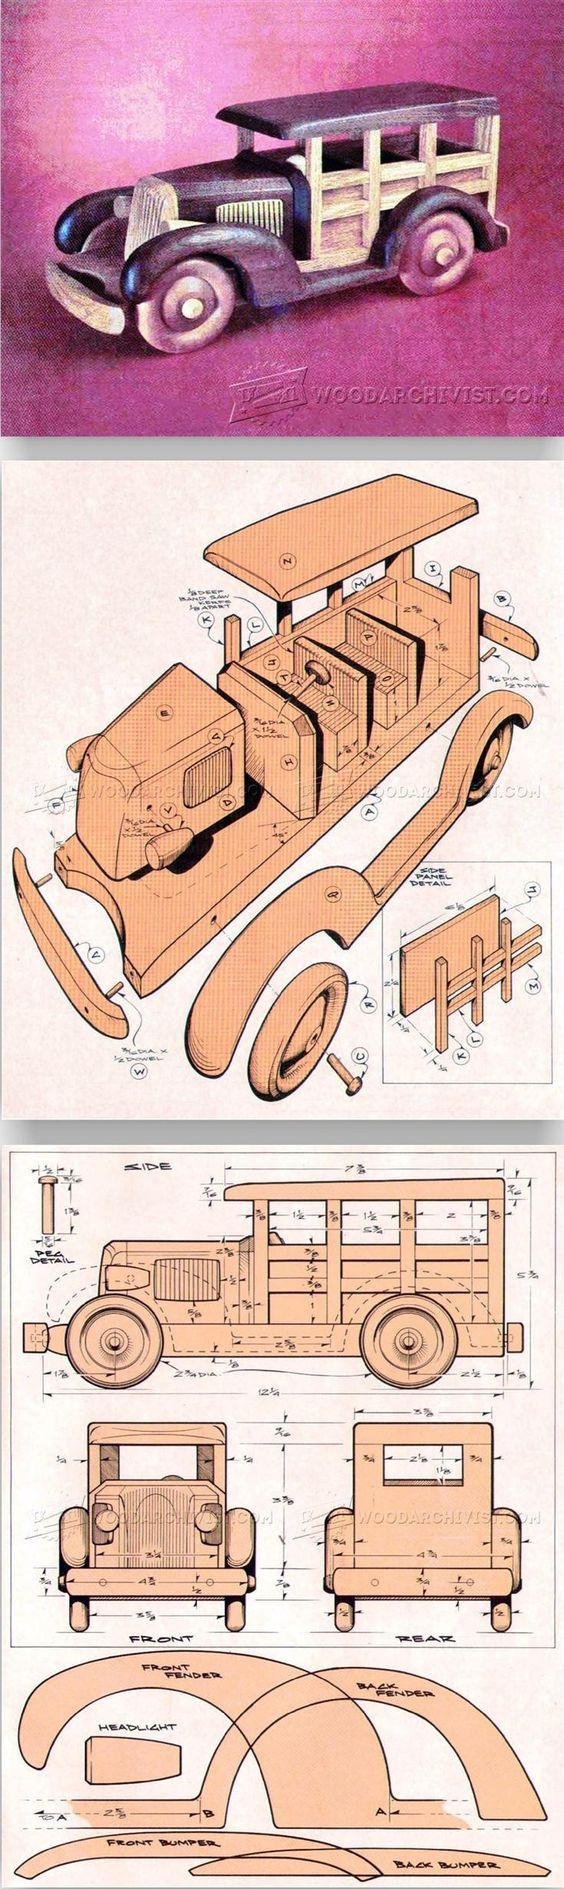 Woody Wagon Plans - Children's Wooden Toy Plans and Projects | WoodArchivist.com